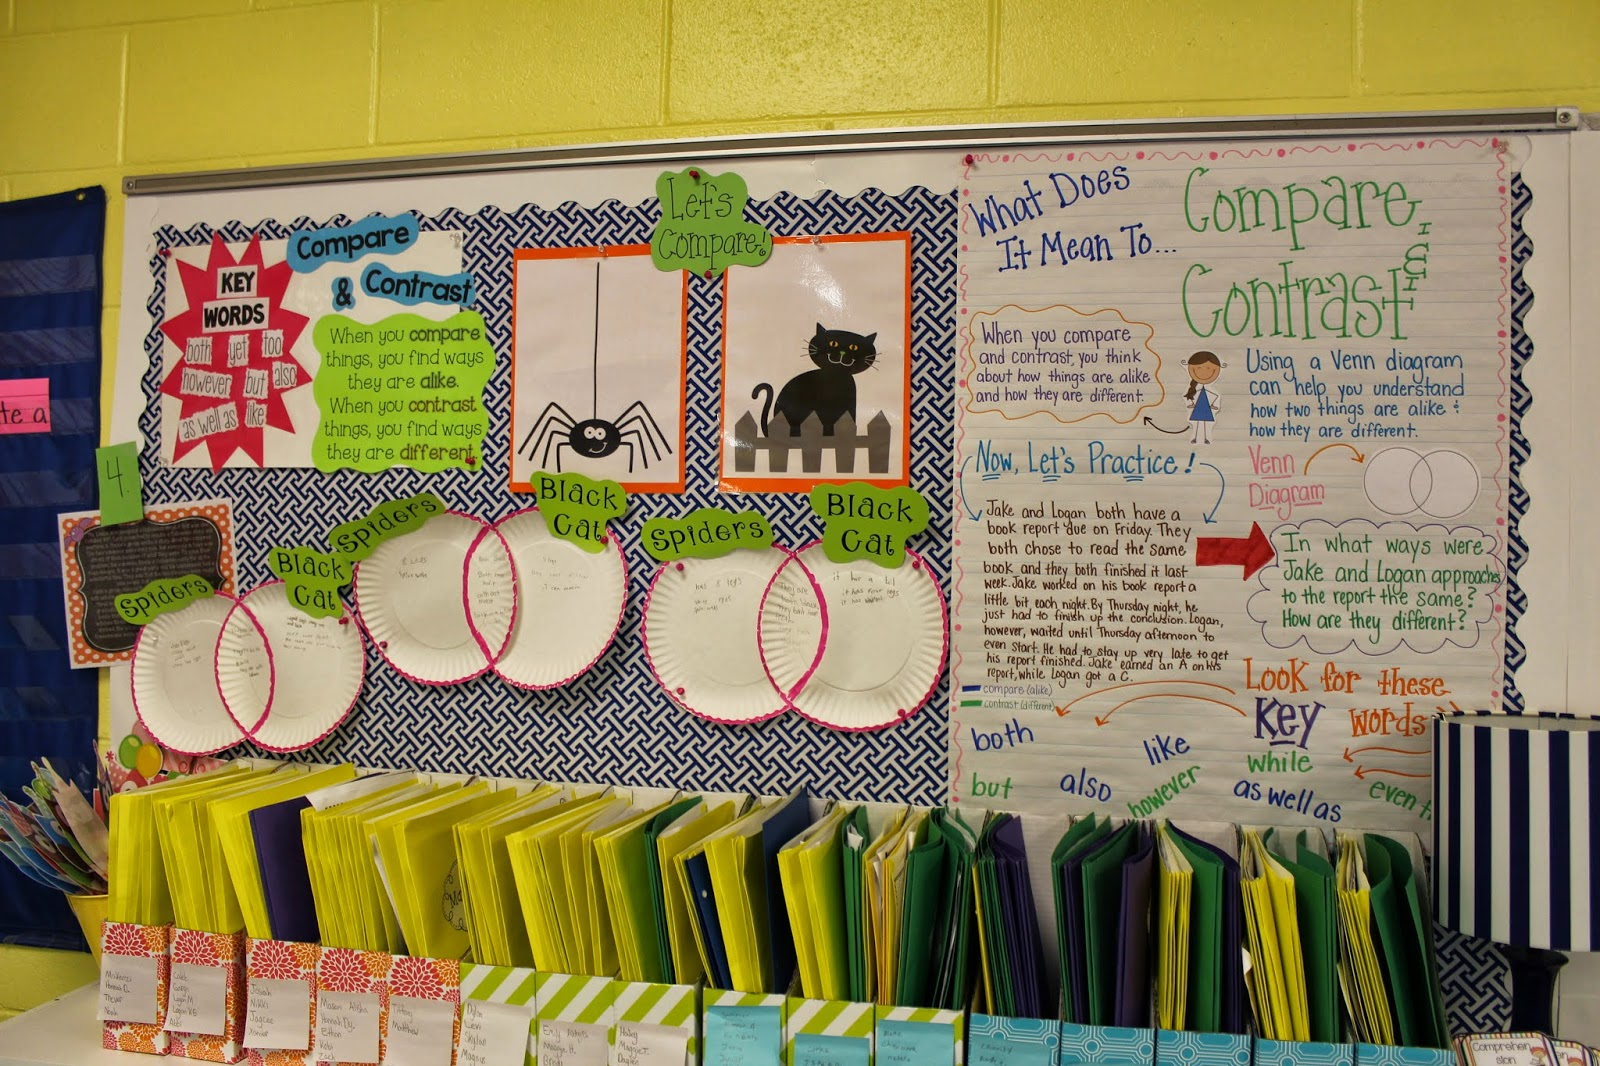 venn diagram bulletin board paragon defrost timer 8141 20 wiring life in first grade compare and contrast